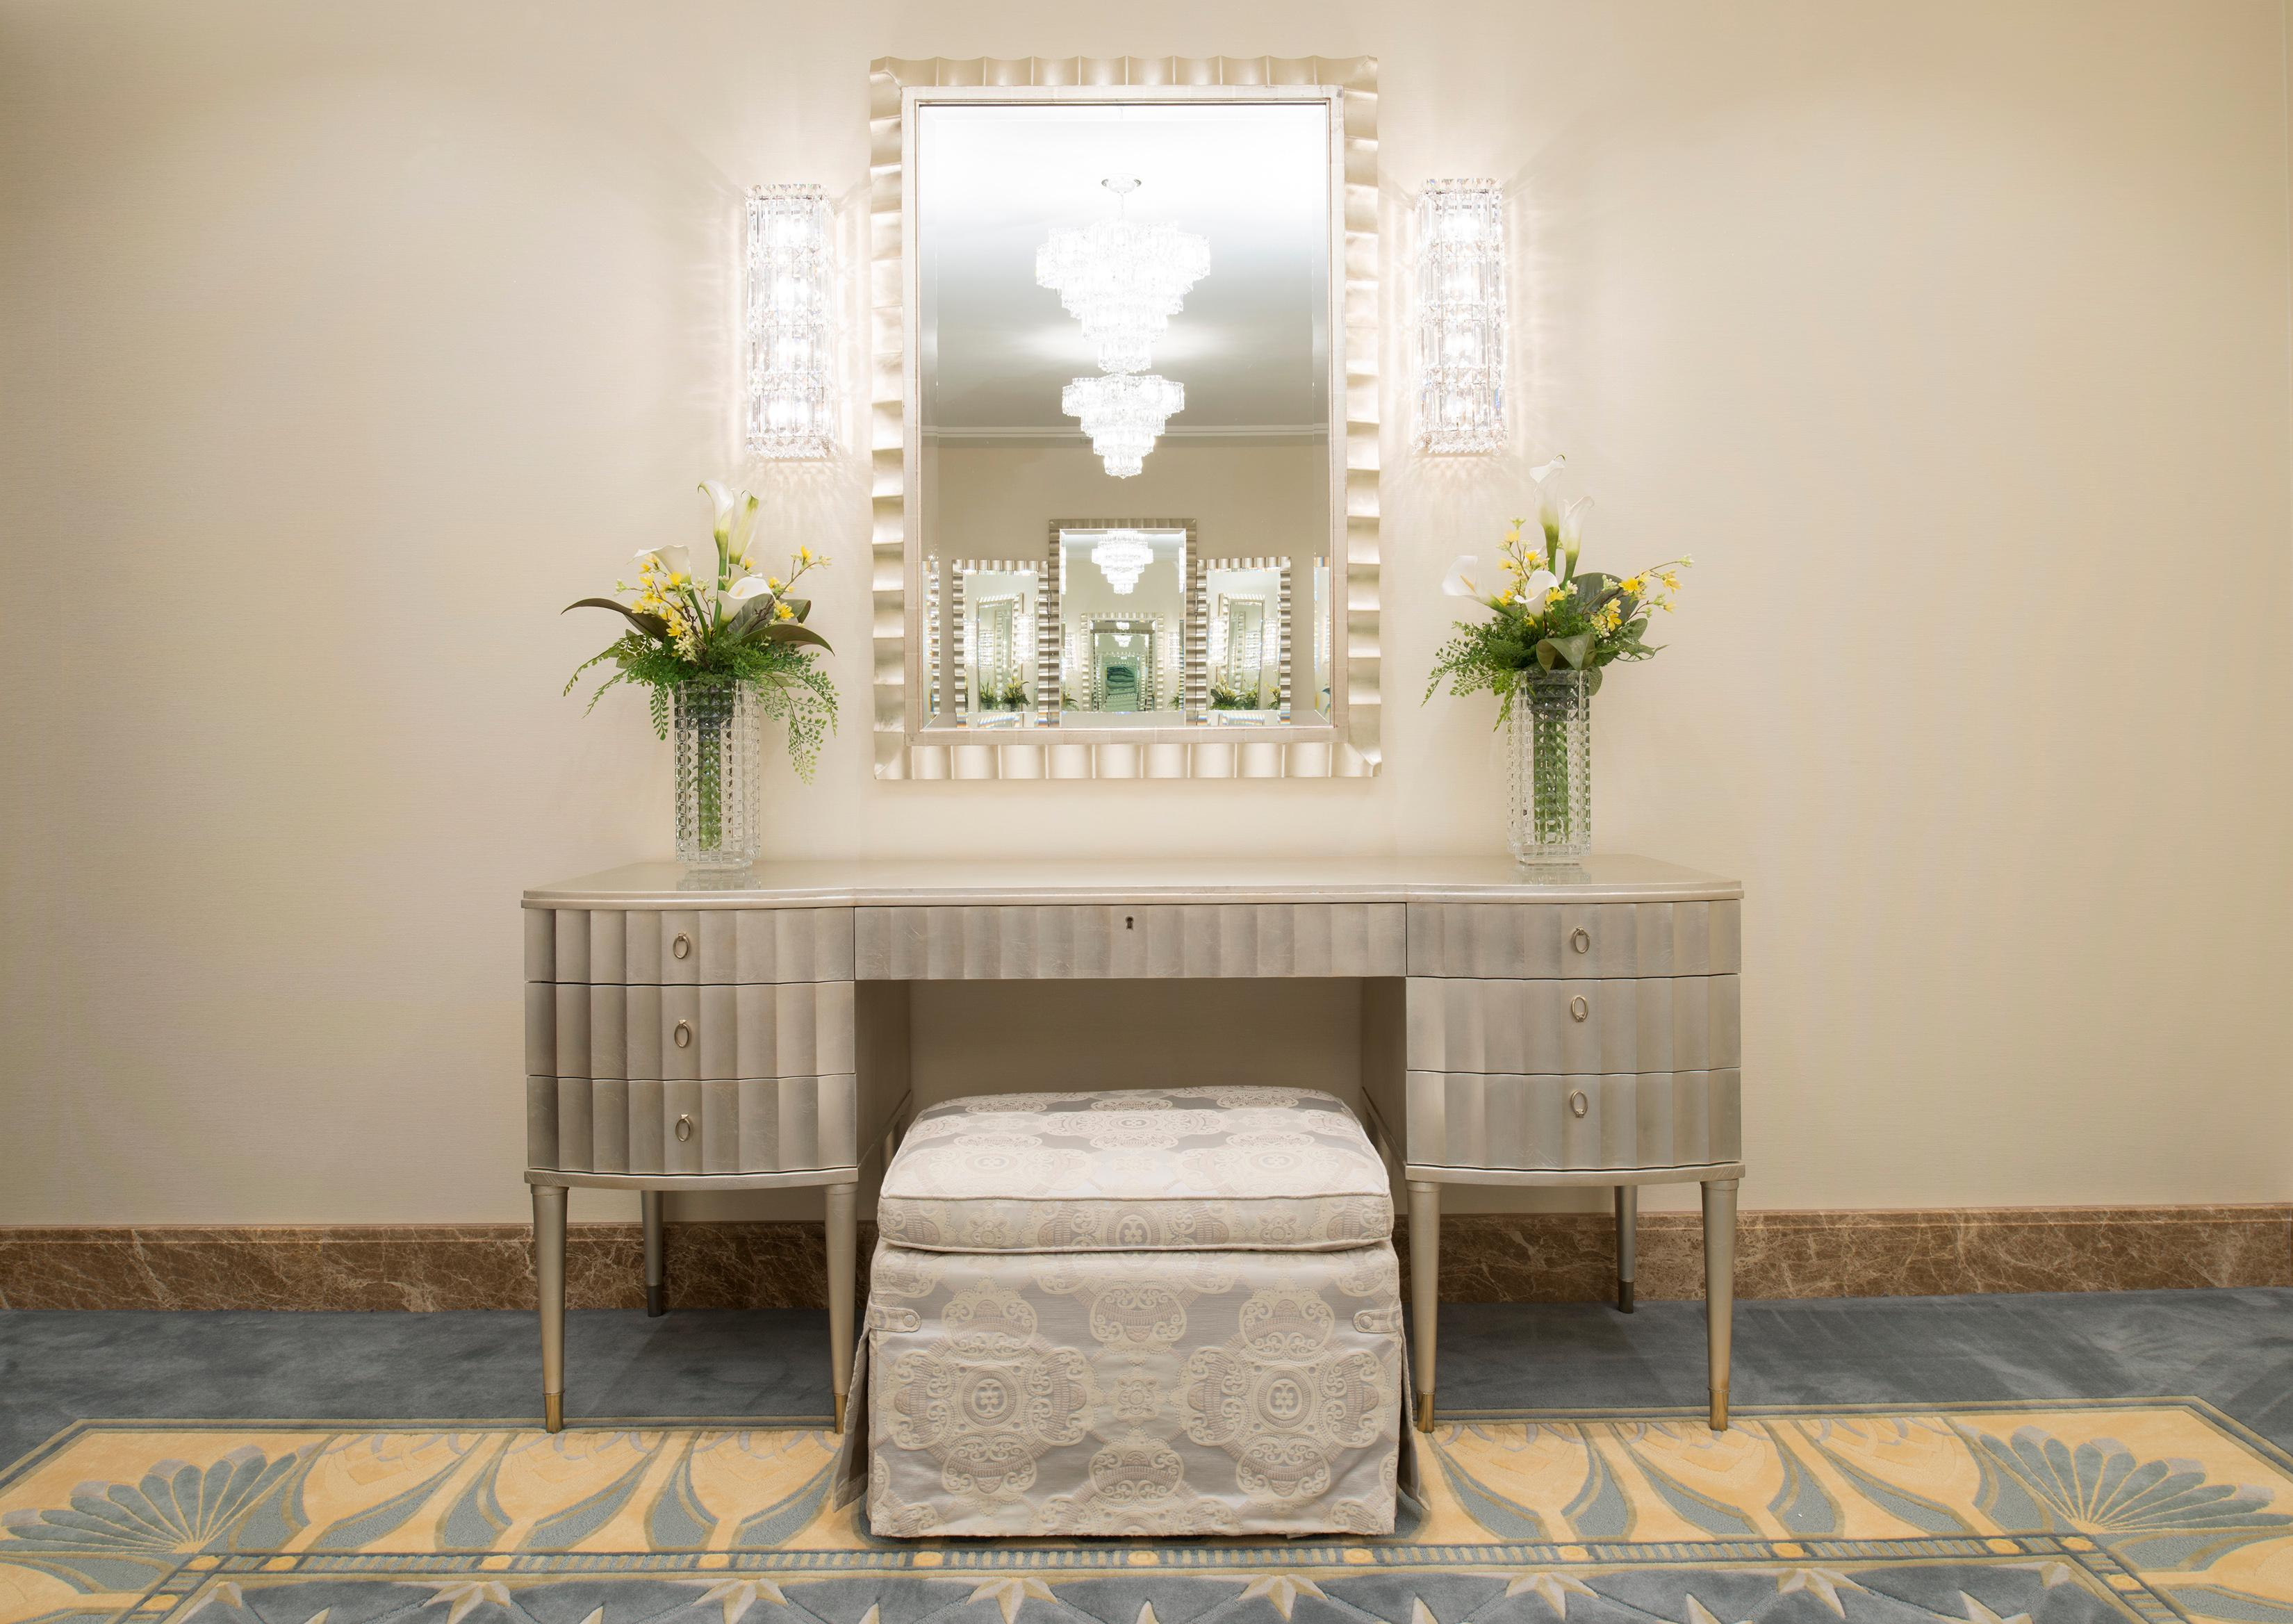 The bride's room in the Jordan River Utah Temple. ©2018 BY INTELLECTUAL RESERVE, INC. ALL RIGHTS RESERVED.